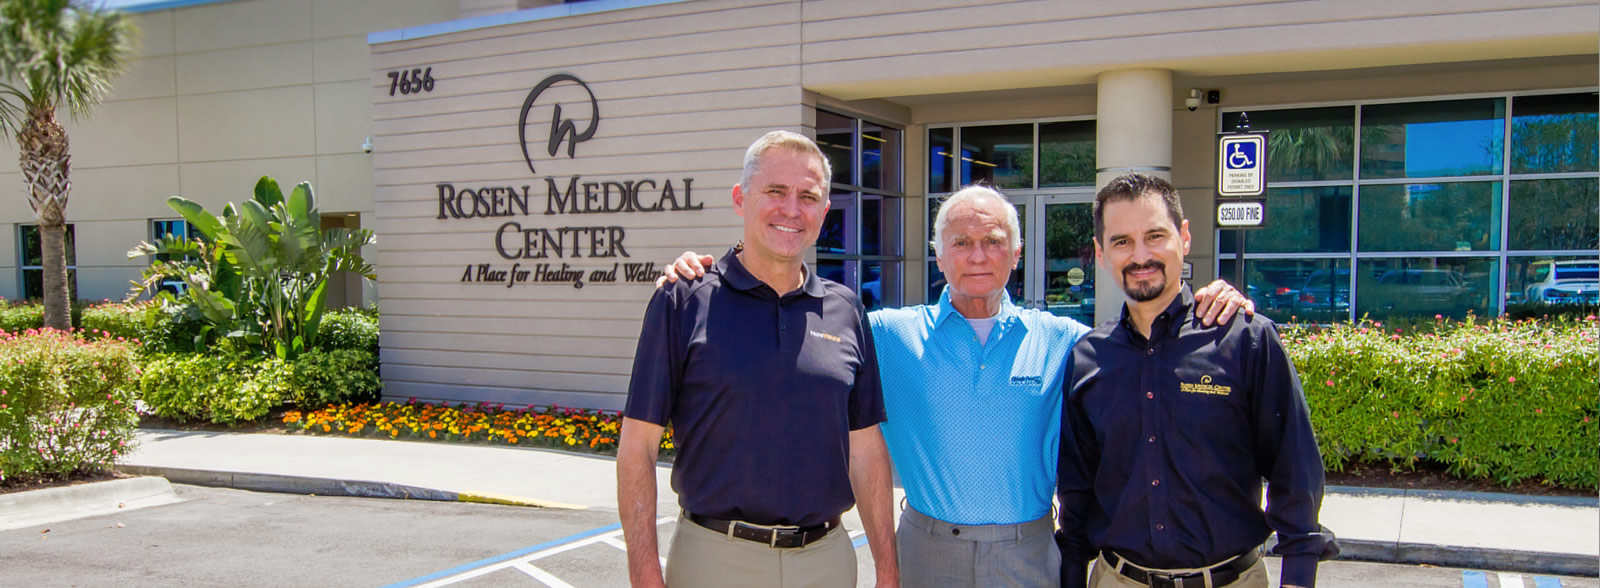 Harris Rosen,Ashley Bacot, and Kenneth A. Aldridge in front of the Medical Center building